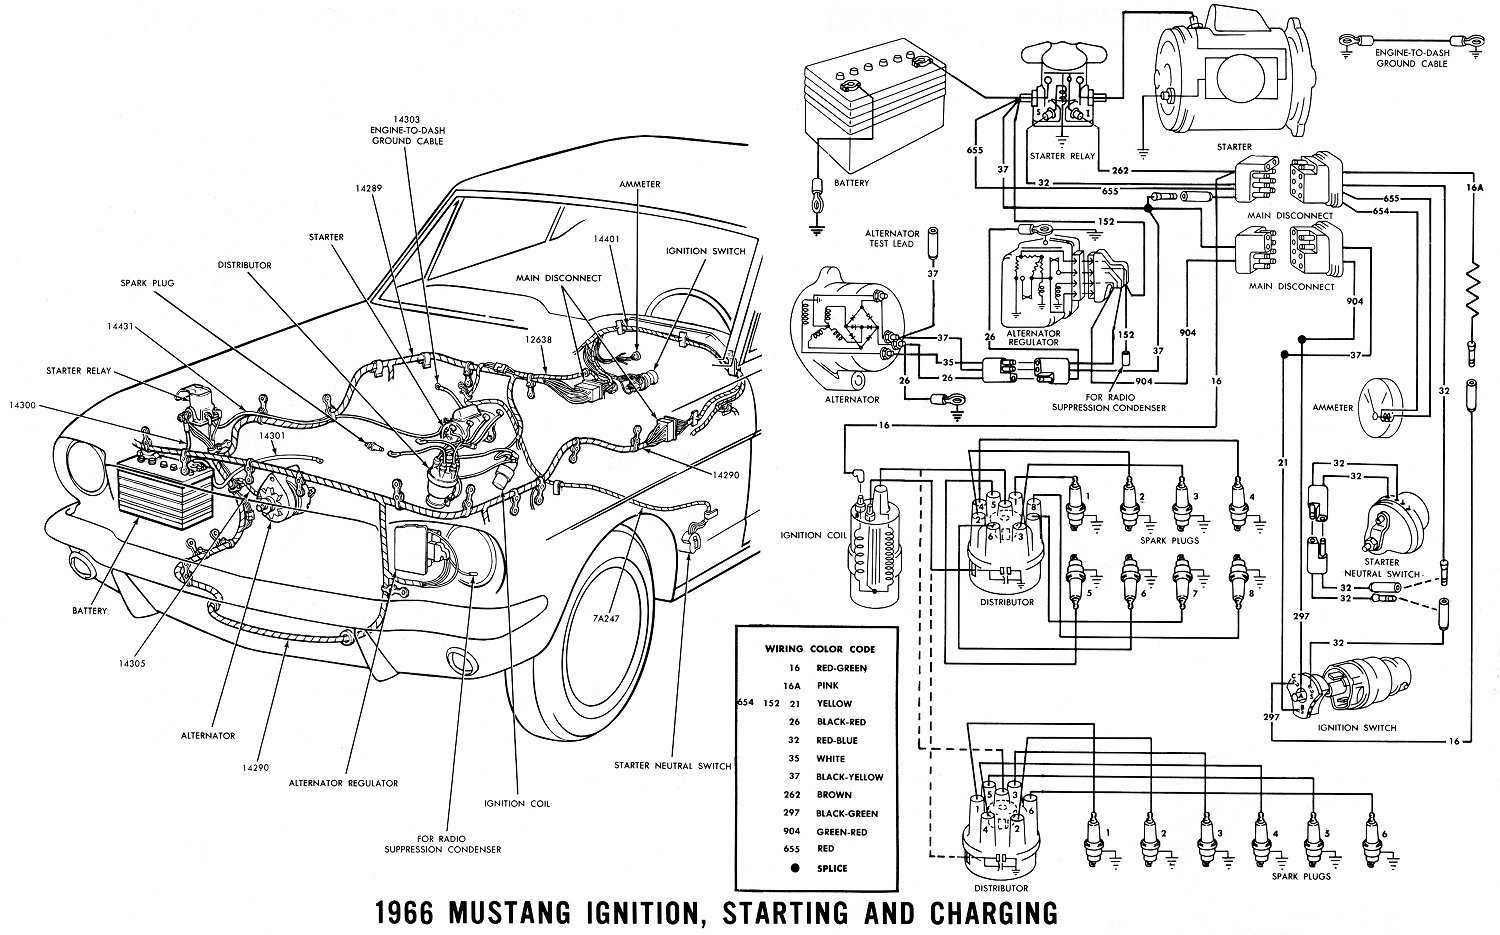 tach wiring diagram for 1993 ford mustang